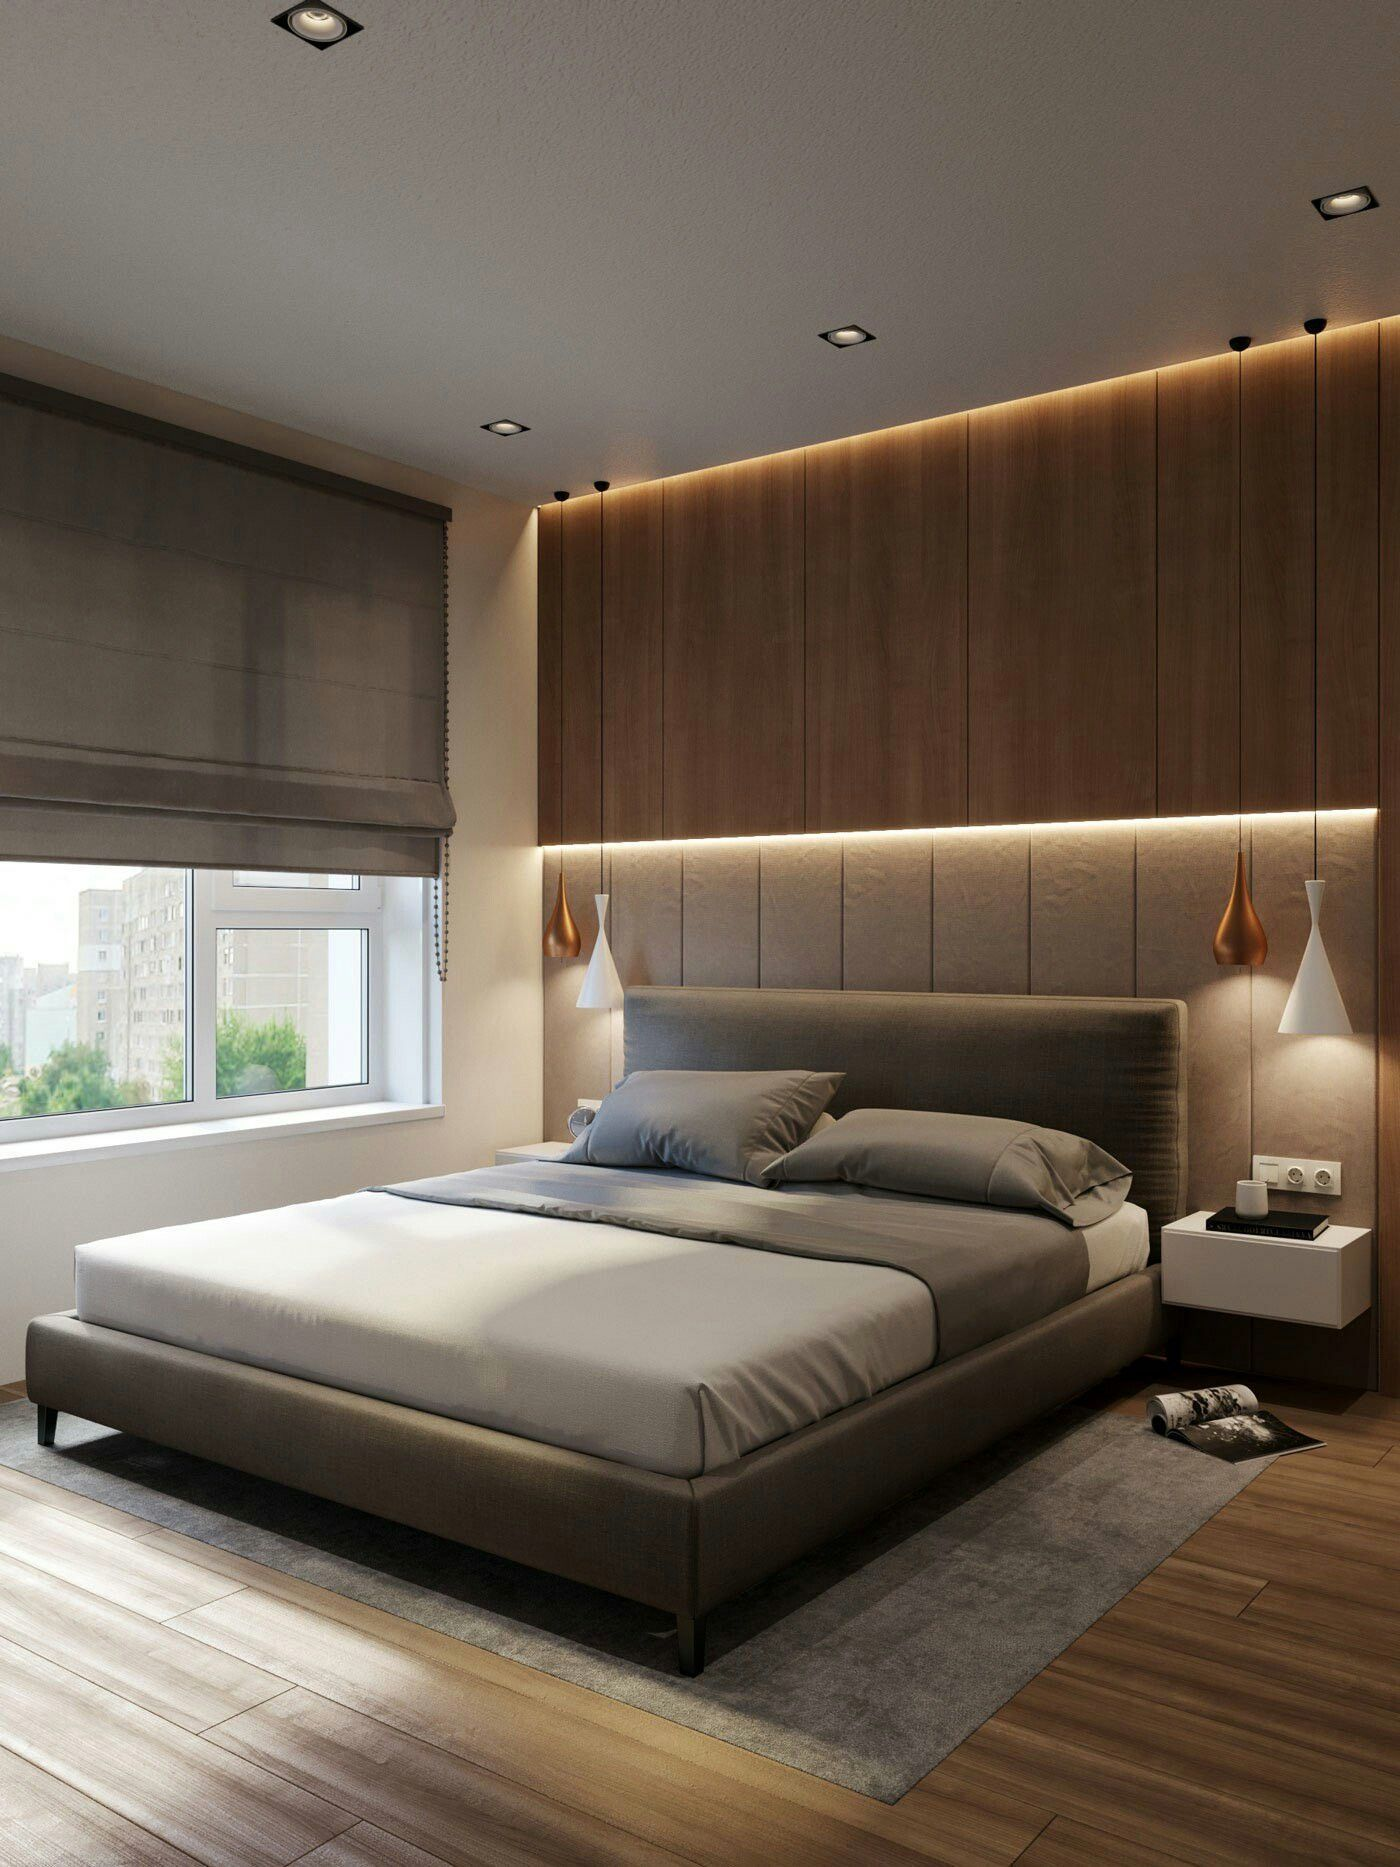 21 Modern Bedroom Ideas For A Perfect Bedroom Modern Bedroom Ideas